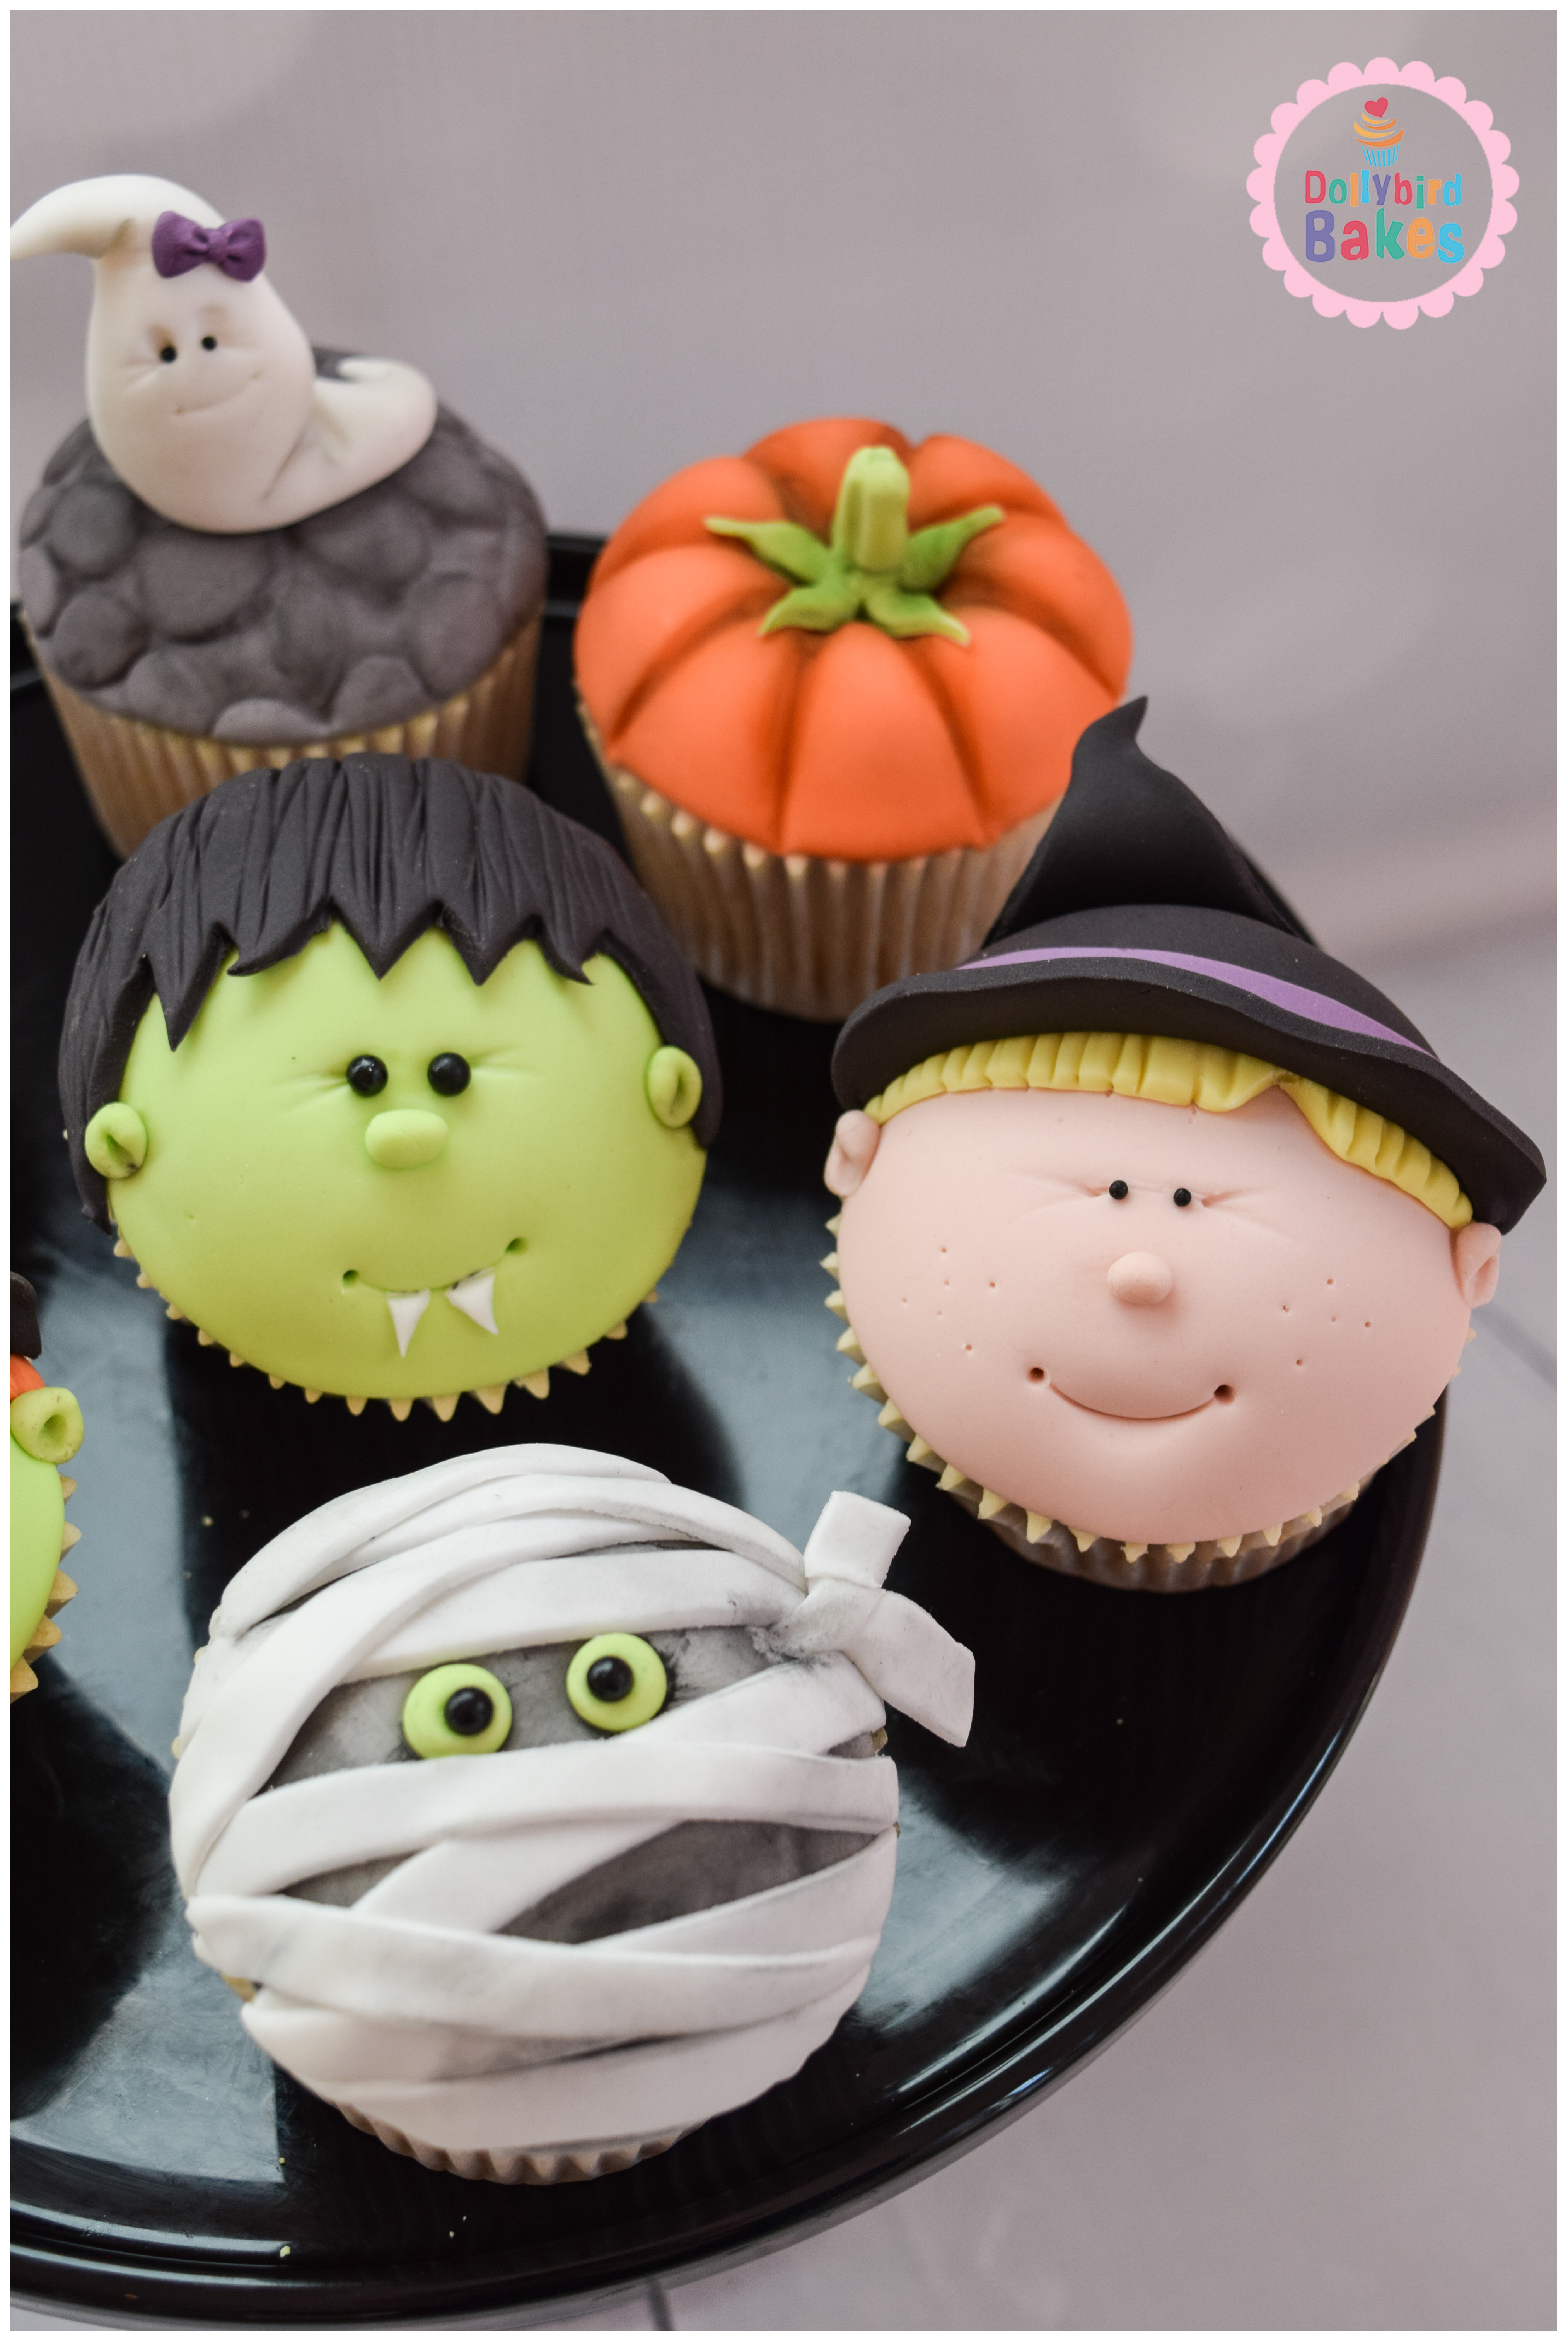 These cupcakes are by Hayley from Dollybird Bakes who was originally Cabin Crew and then moved well and truly into the cake world! These cupcakes are just lovey and perfect for Halloween. They are so simple, yet really effective and would look perfect on any Halloween cake display table.